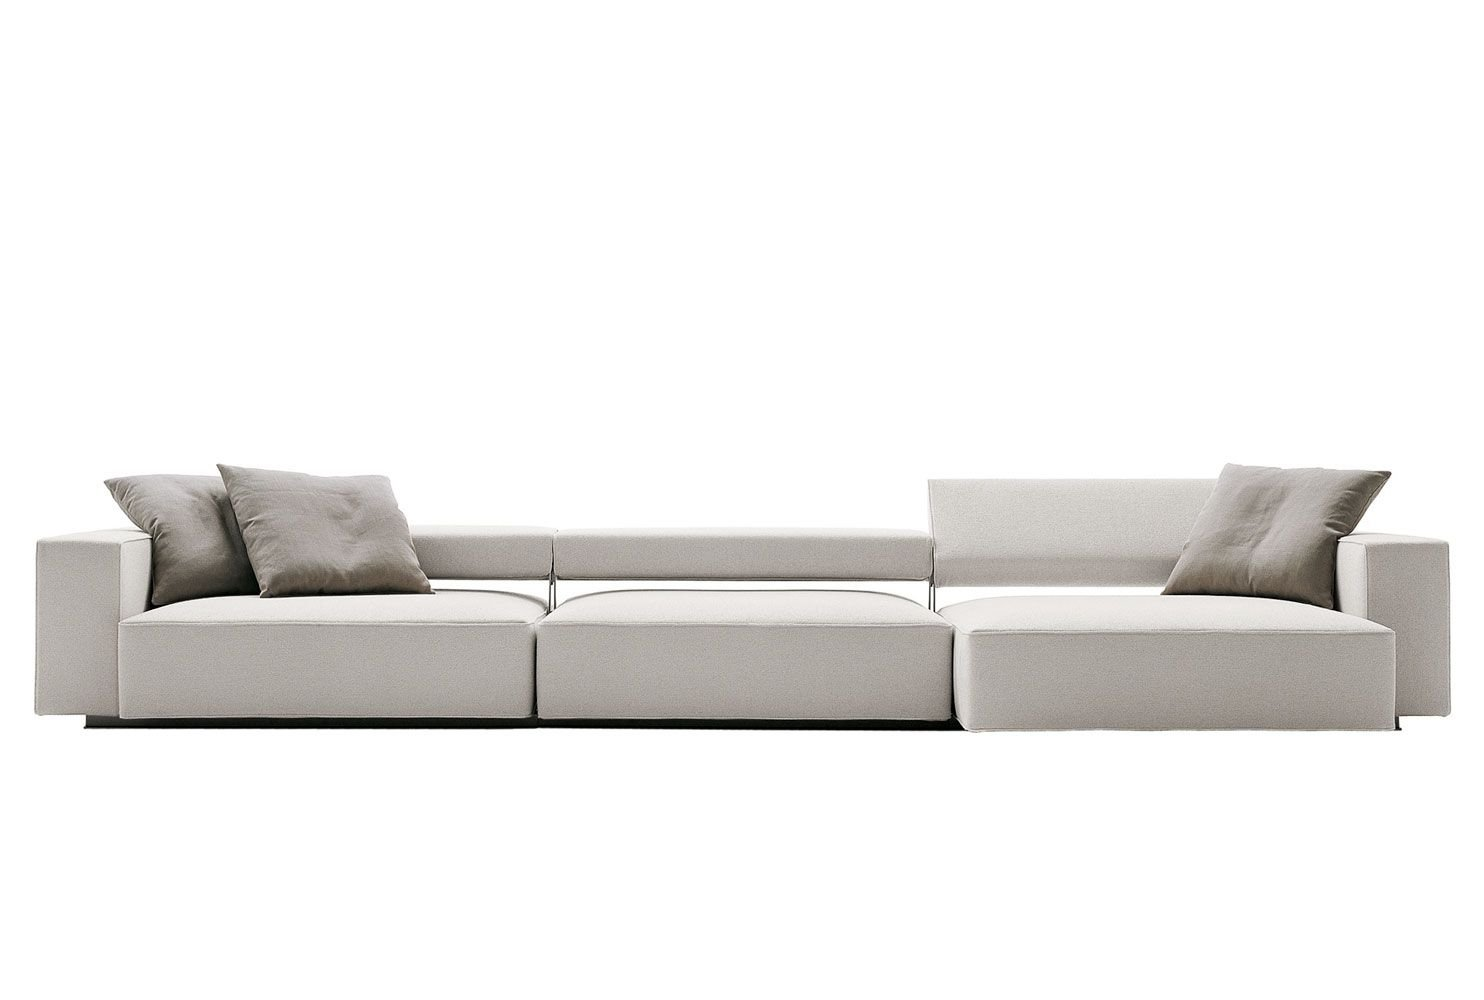 Andy sofa b b italia tomassini arredamenti for B and b divani